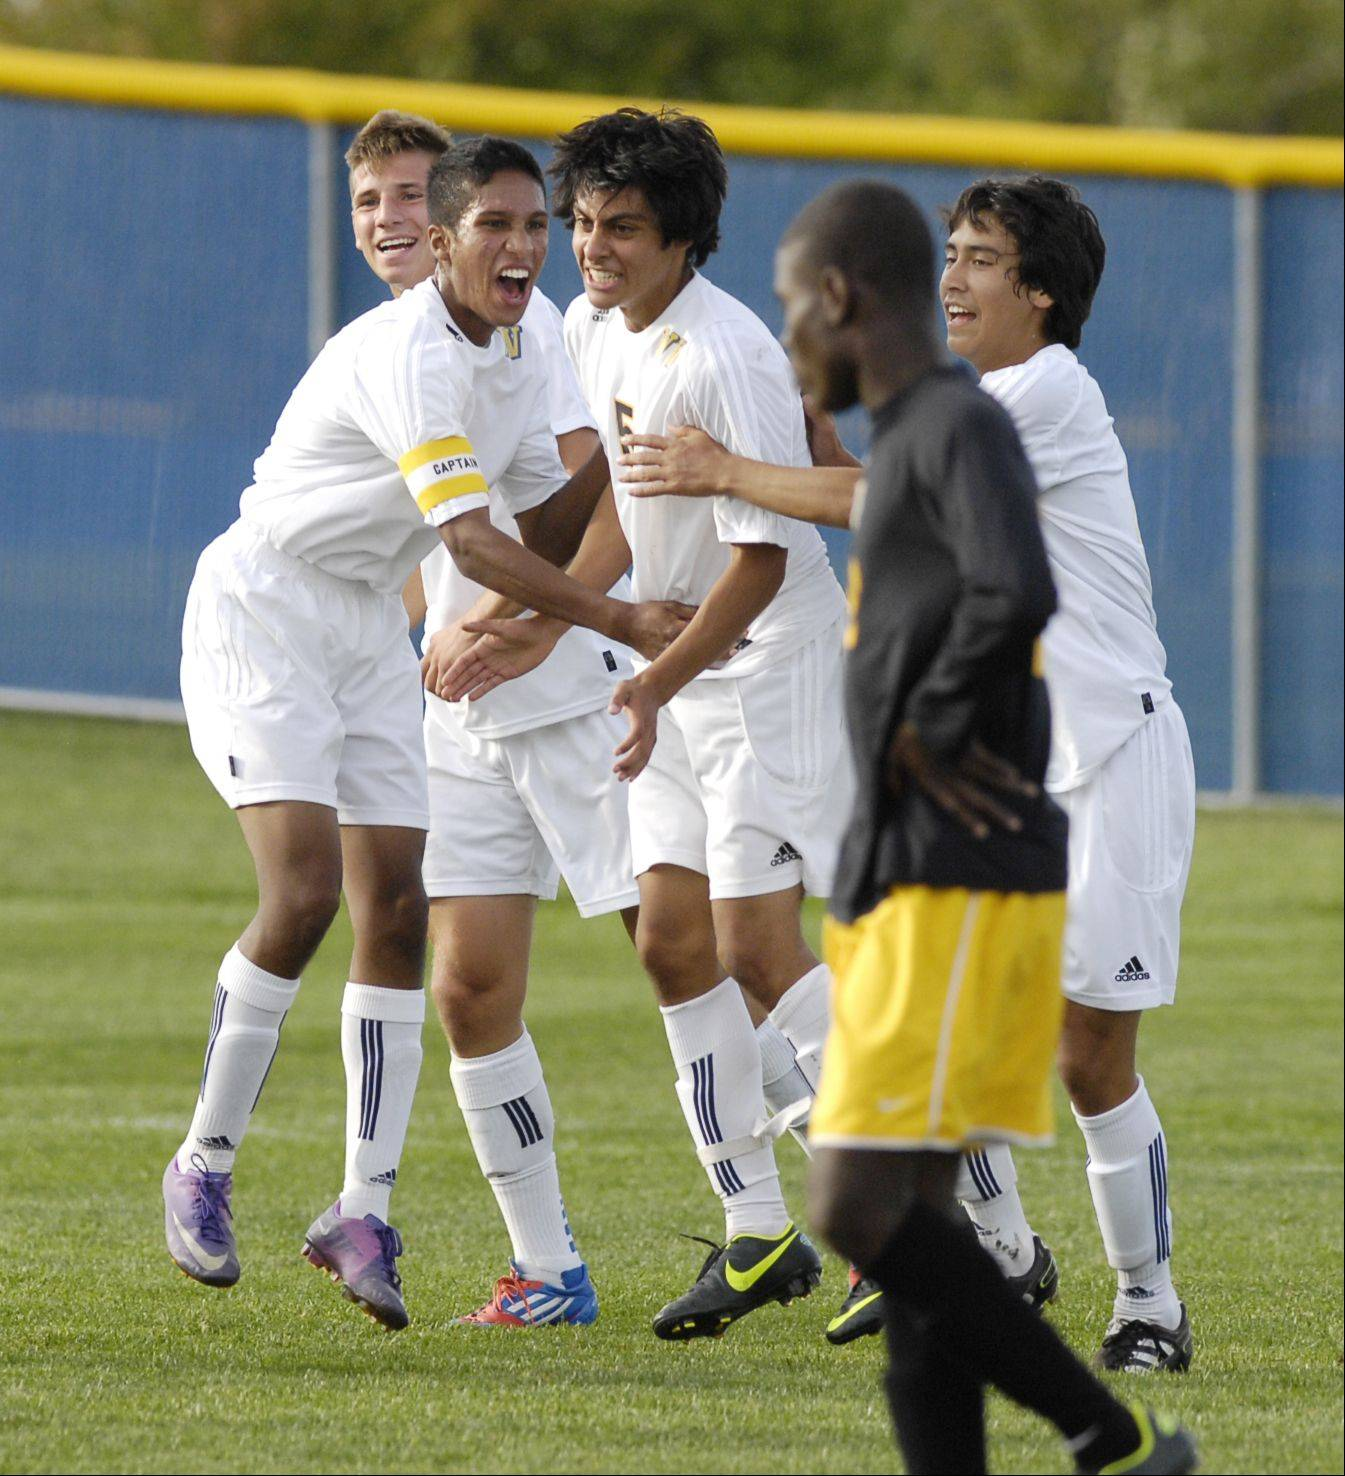 Neuqua Valley celebrates a goal by Eduardo Cruz (5) during boys soccer against Metea Valley at home.